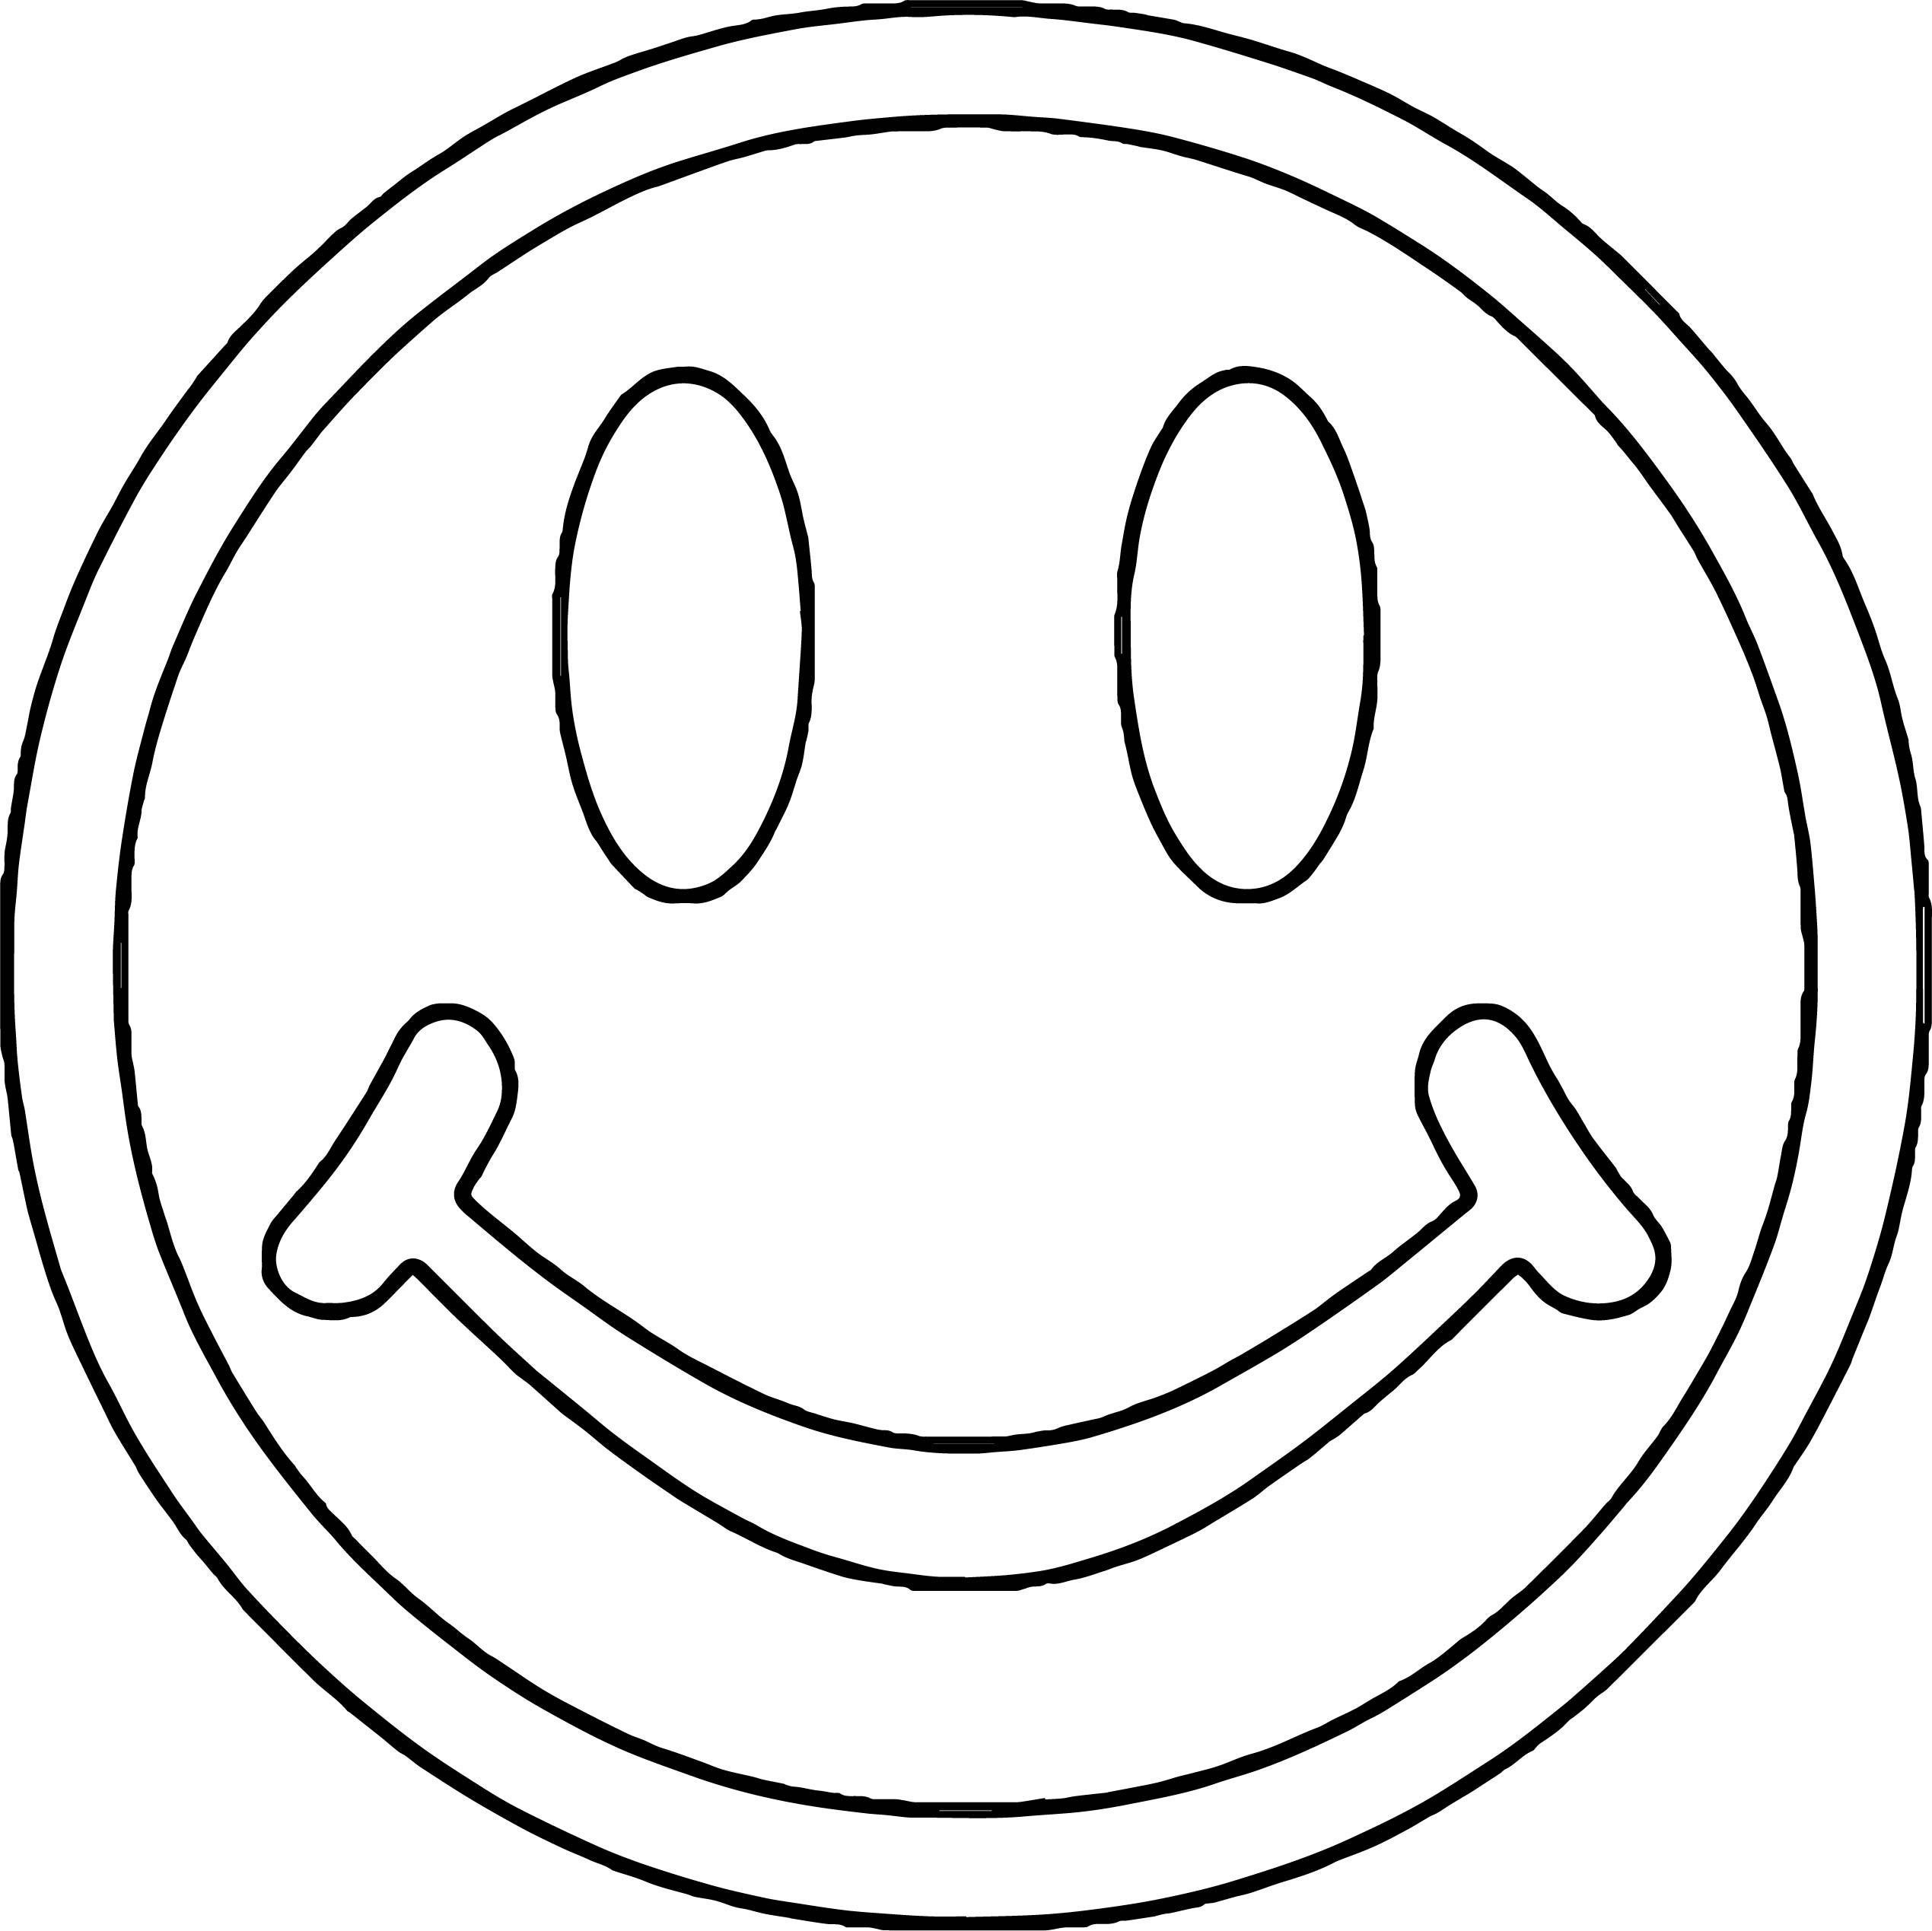 Face Smile Face 1 Coloring Page